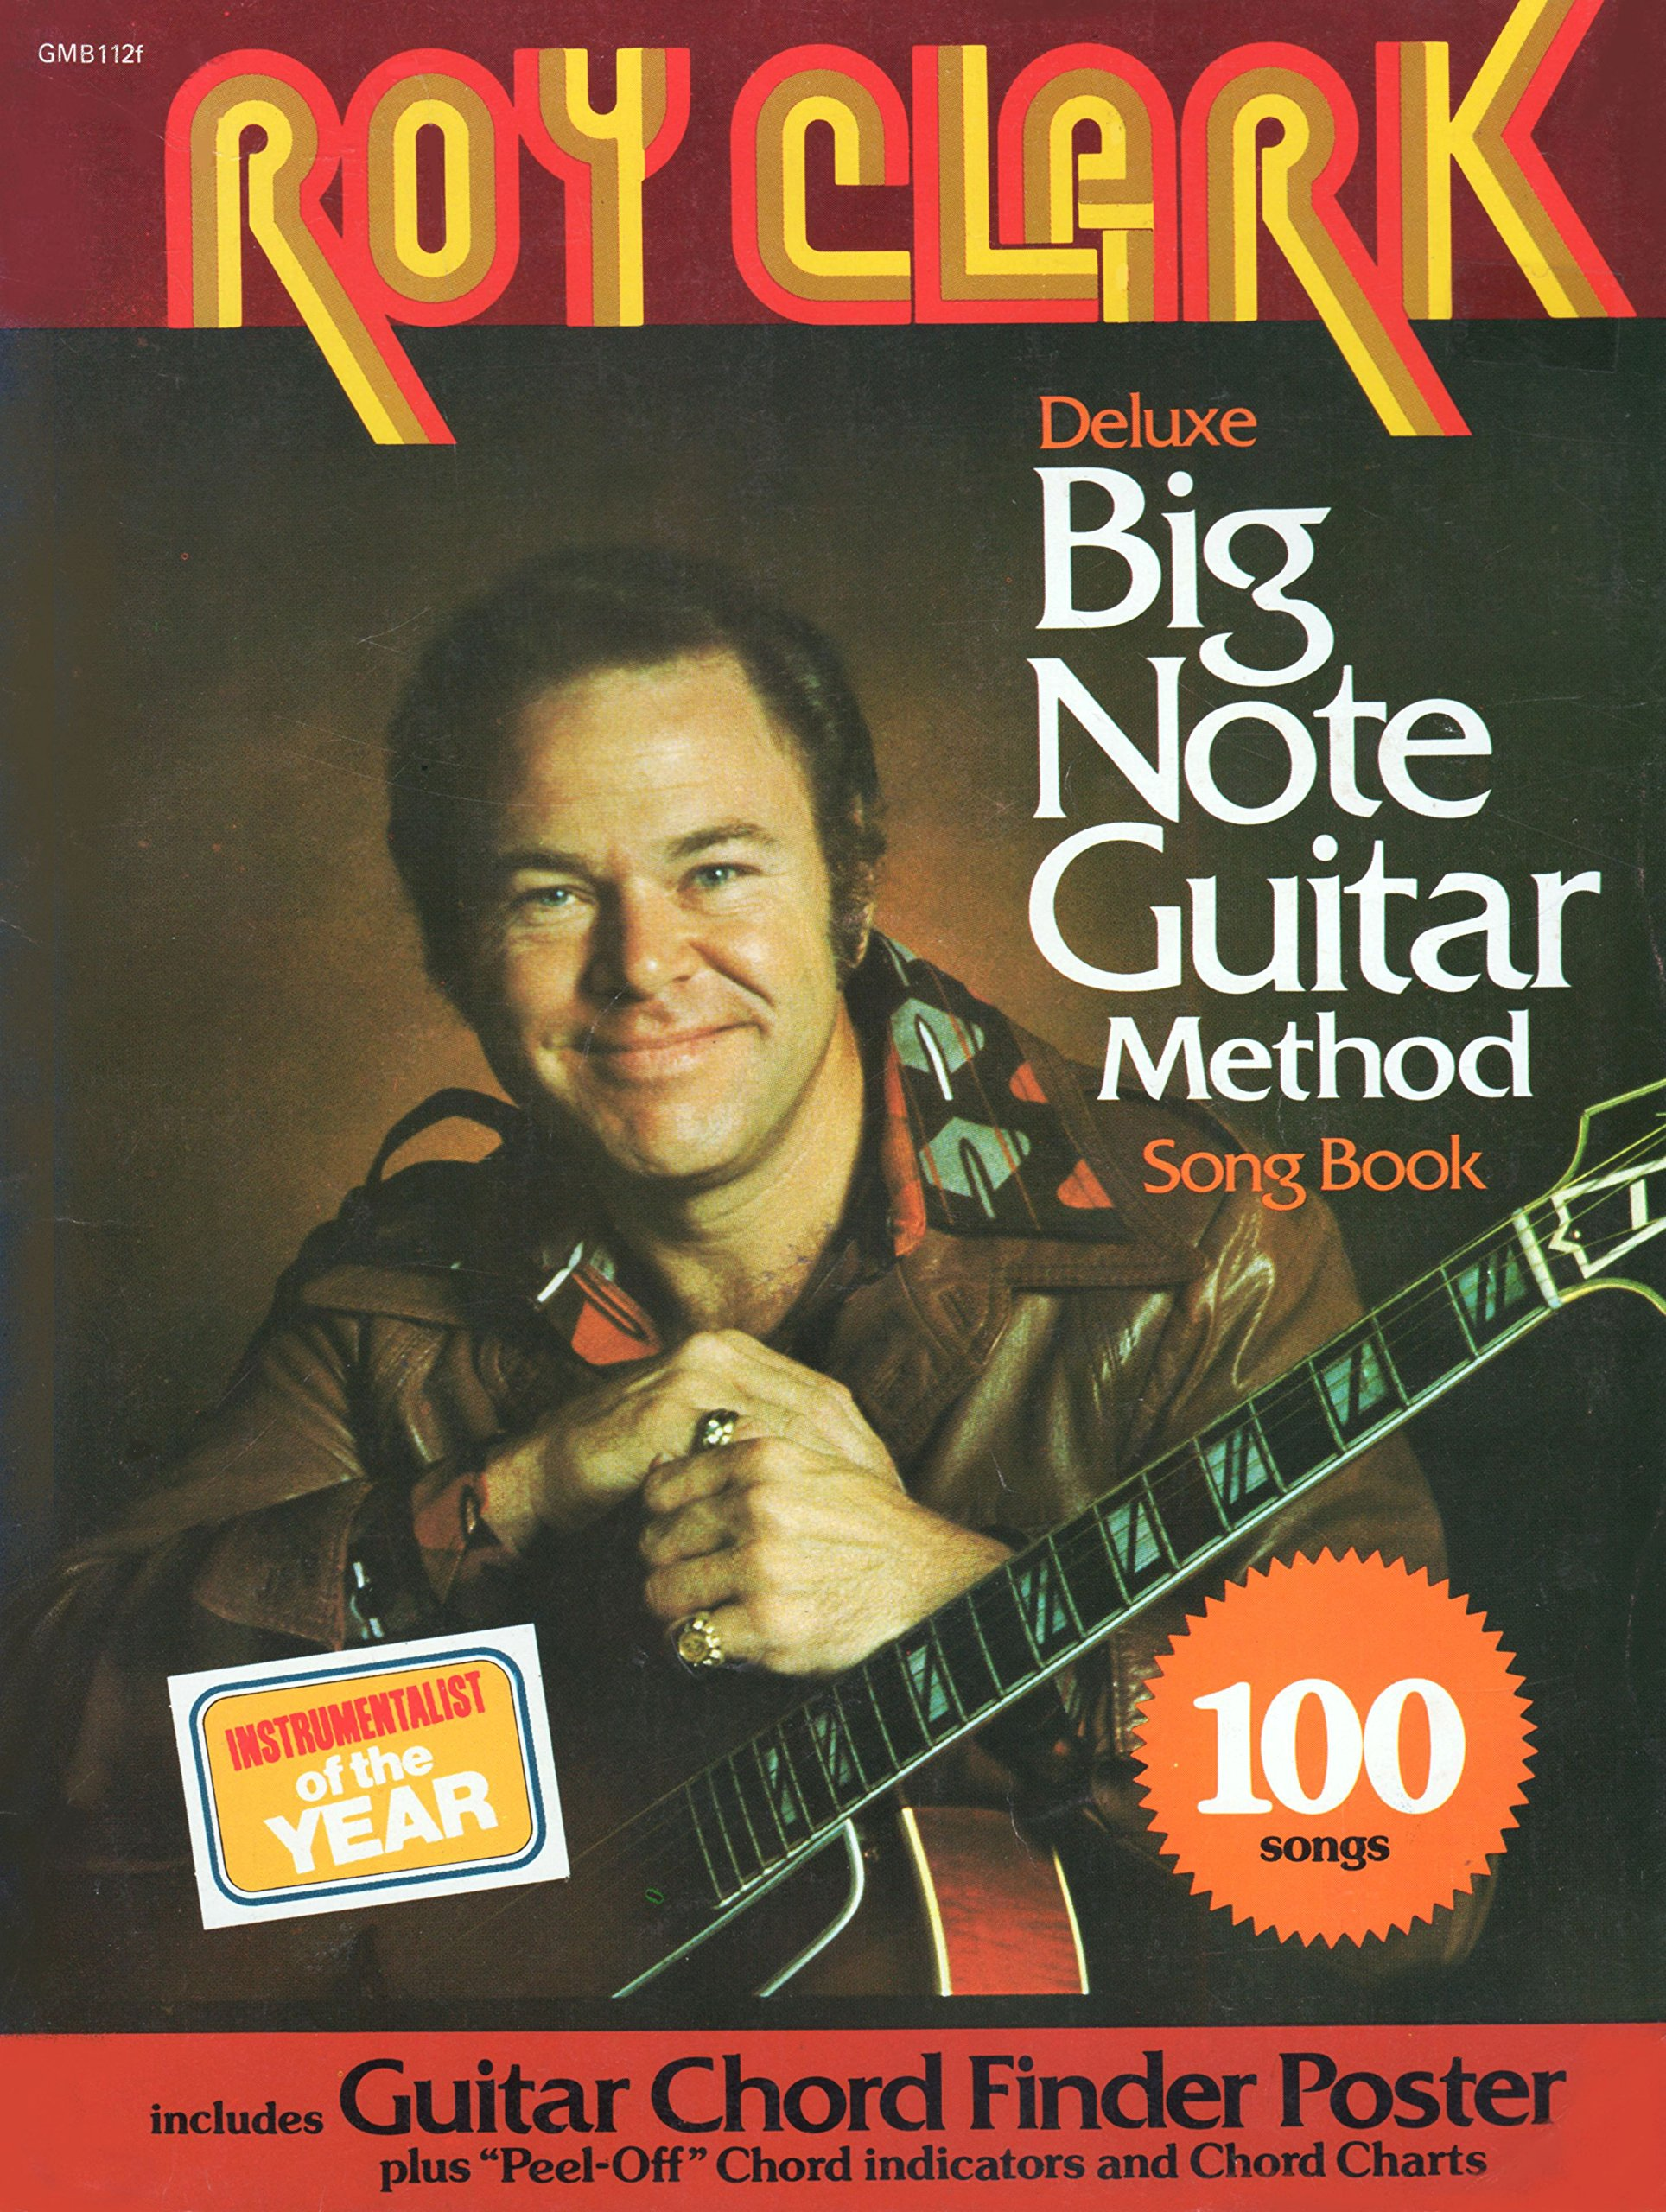 Roy Clark Deluxe Big Note Guitar Song Book 9780849401602 How To Read Chord Diagrams Self Taught Lessons Books